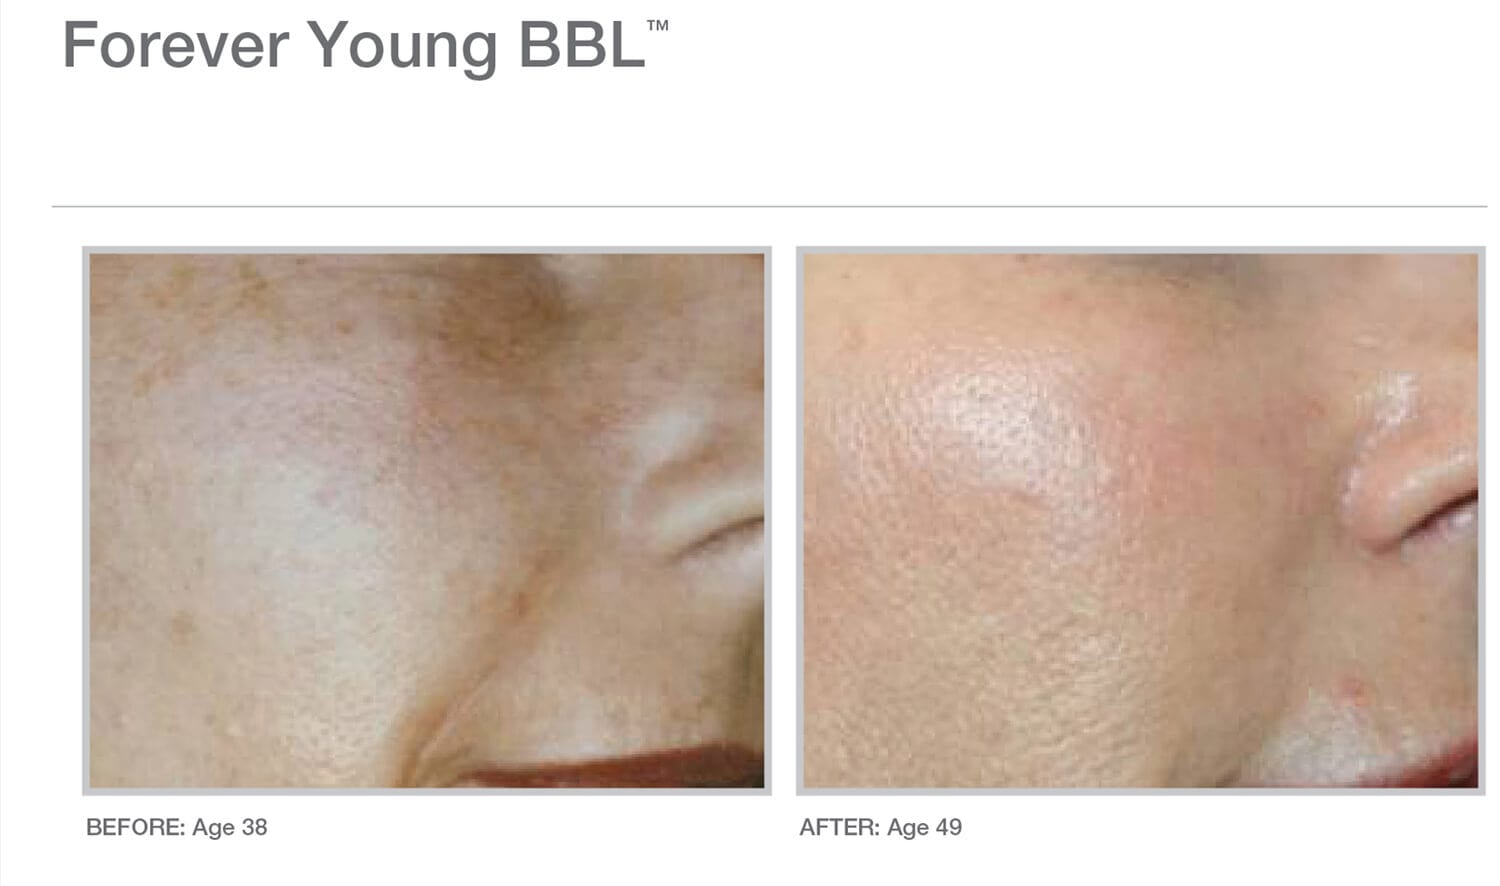 FYBBL-11yrs-after-treatment1